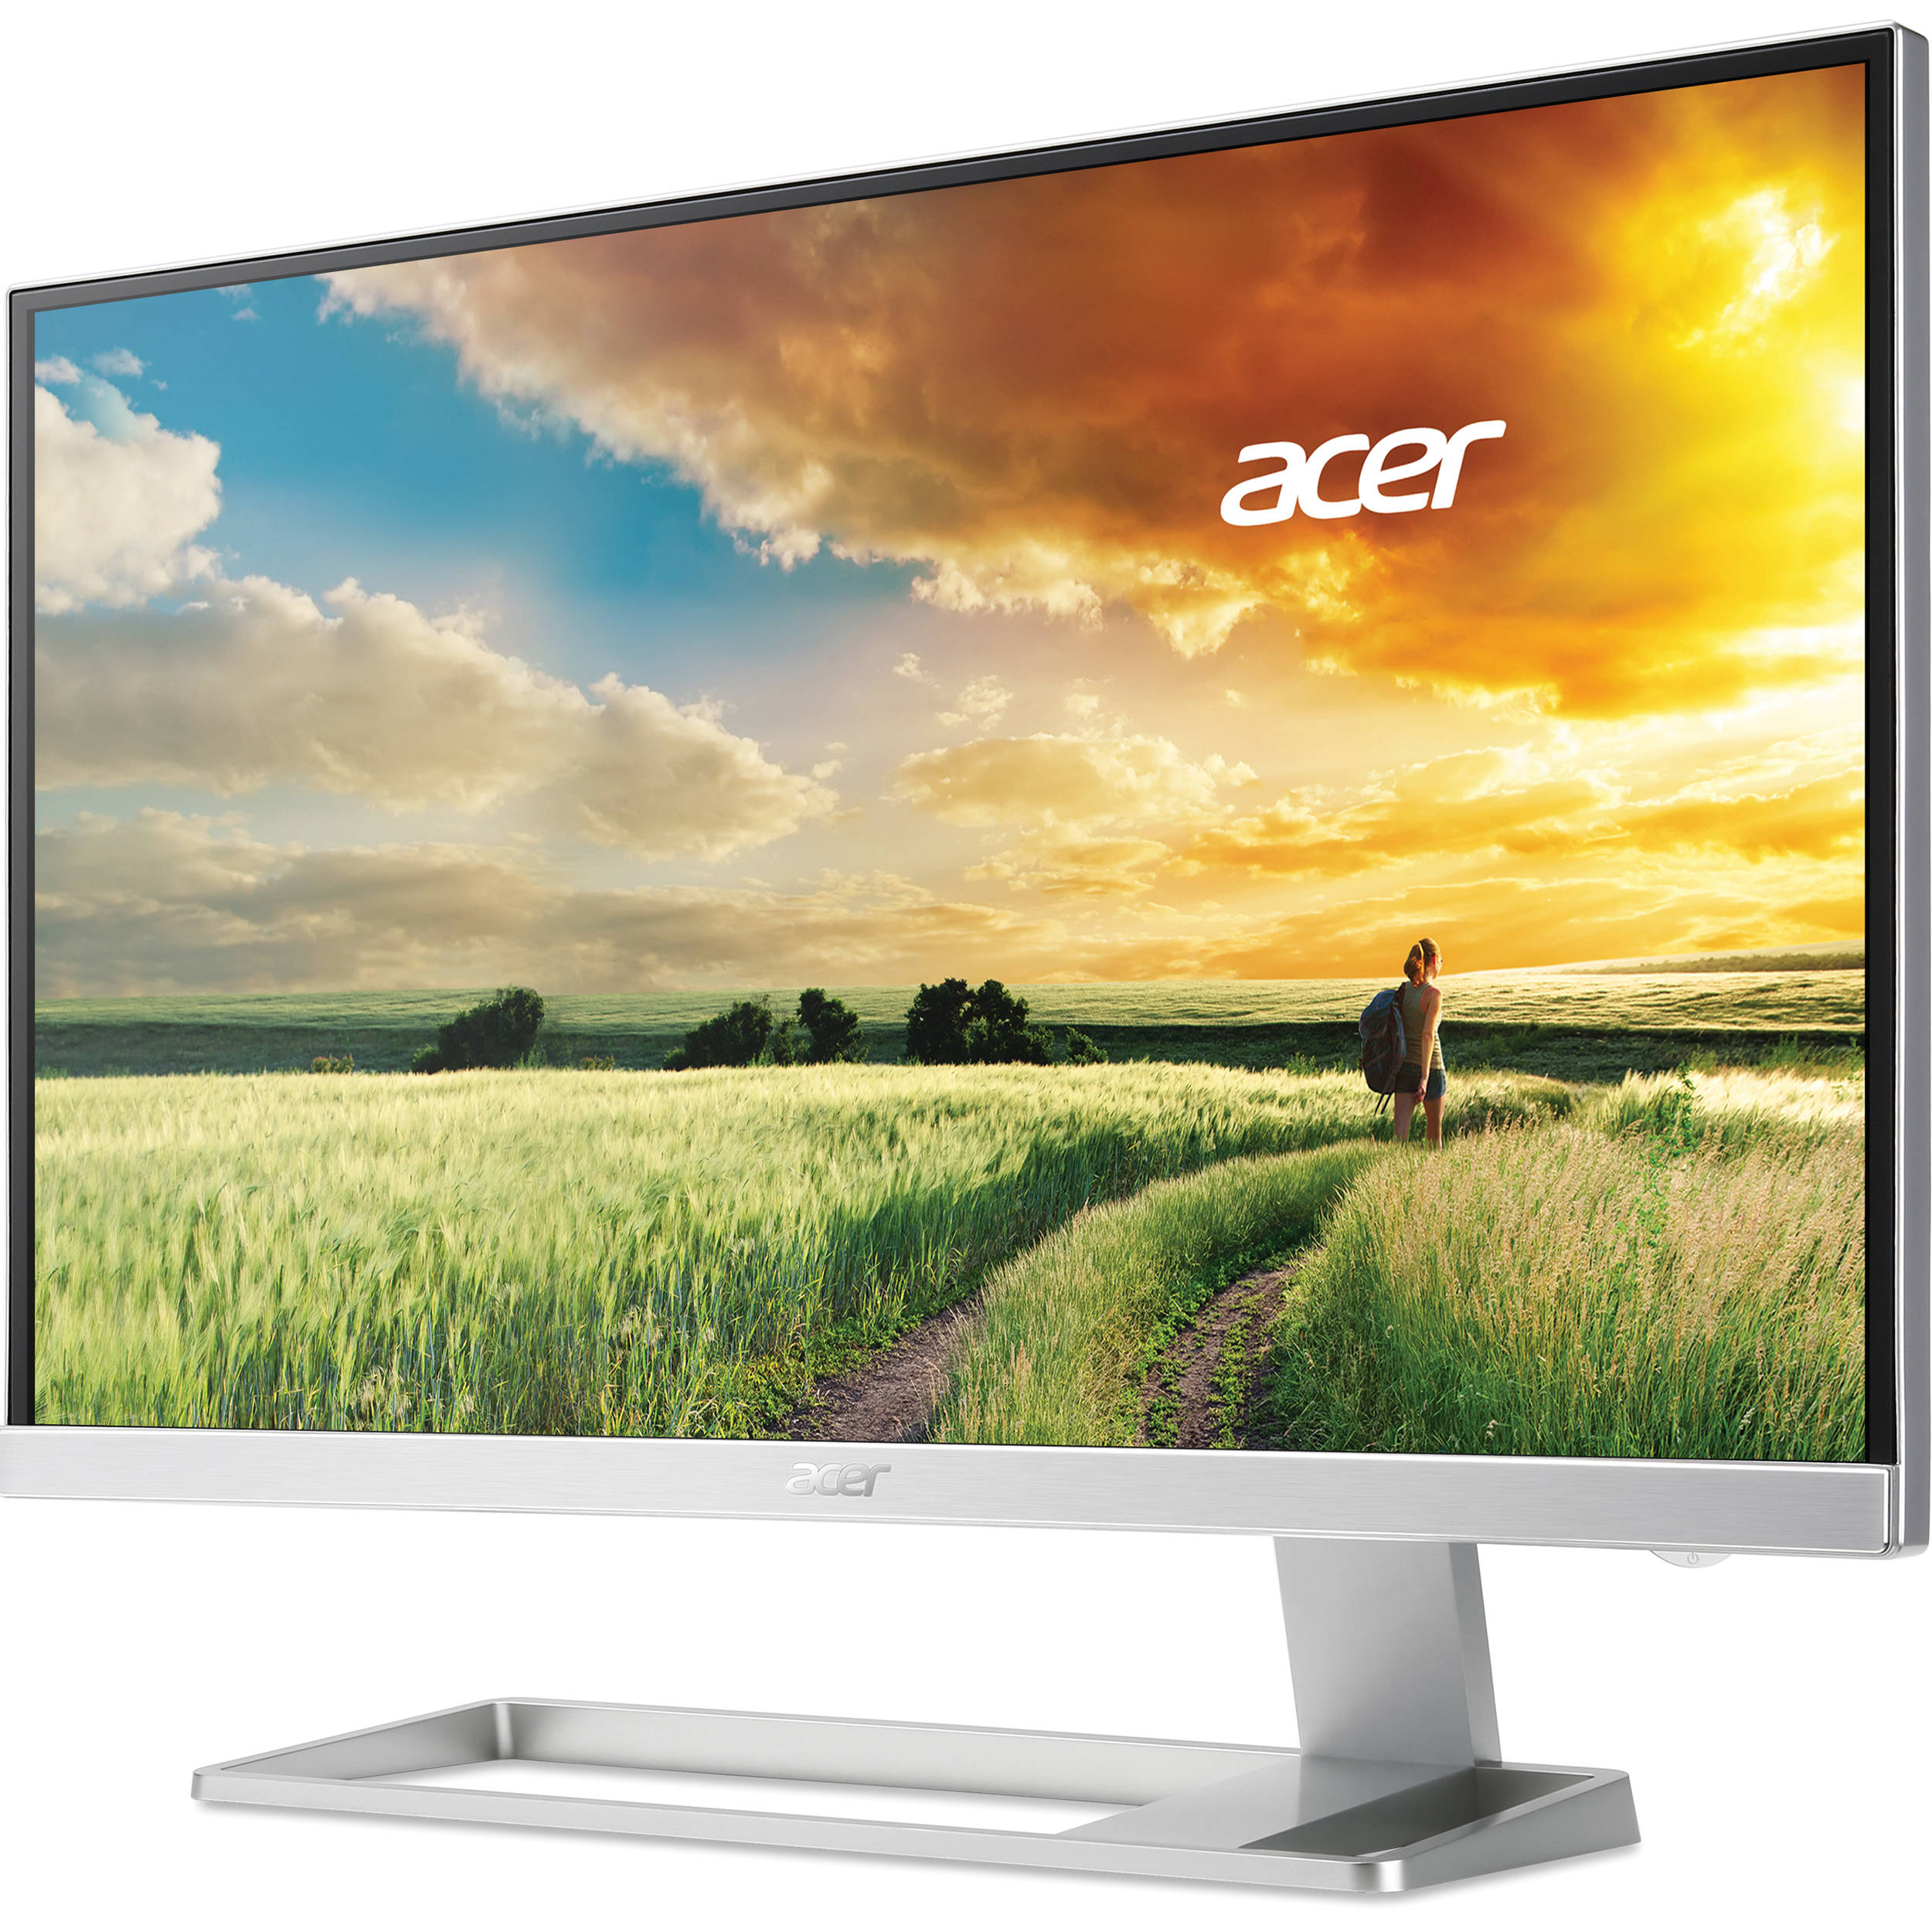 Acer S8HK review: a classy 8K monitor - Review - Monitors and